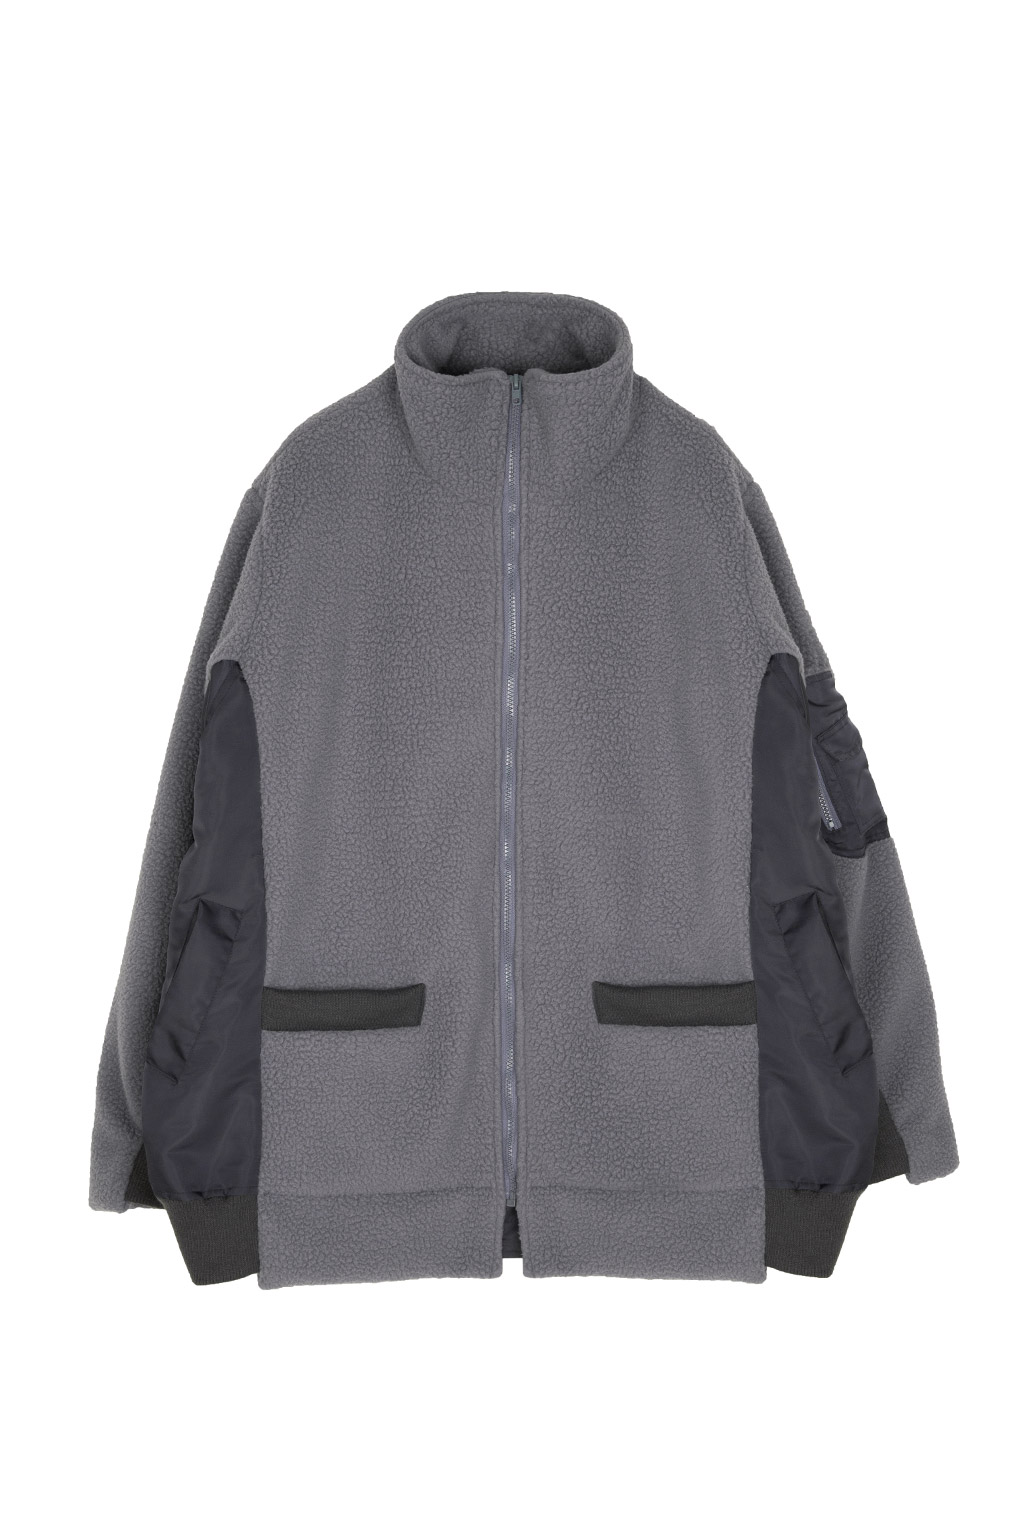 fleece docking ma-1 - charcoal